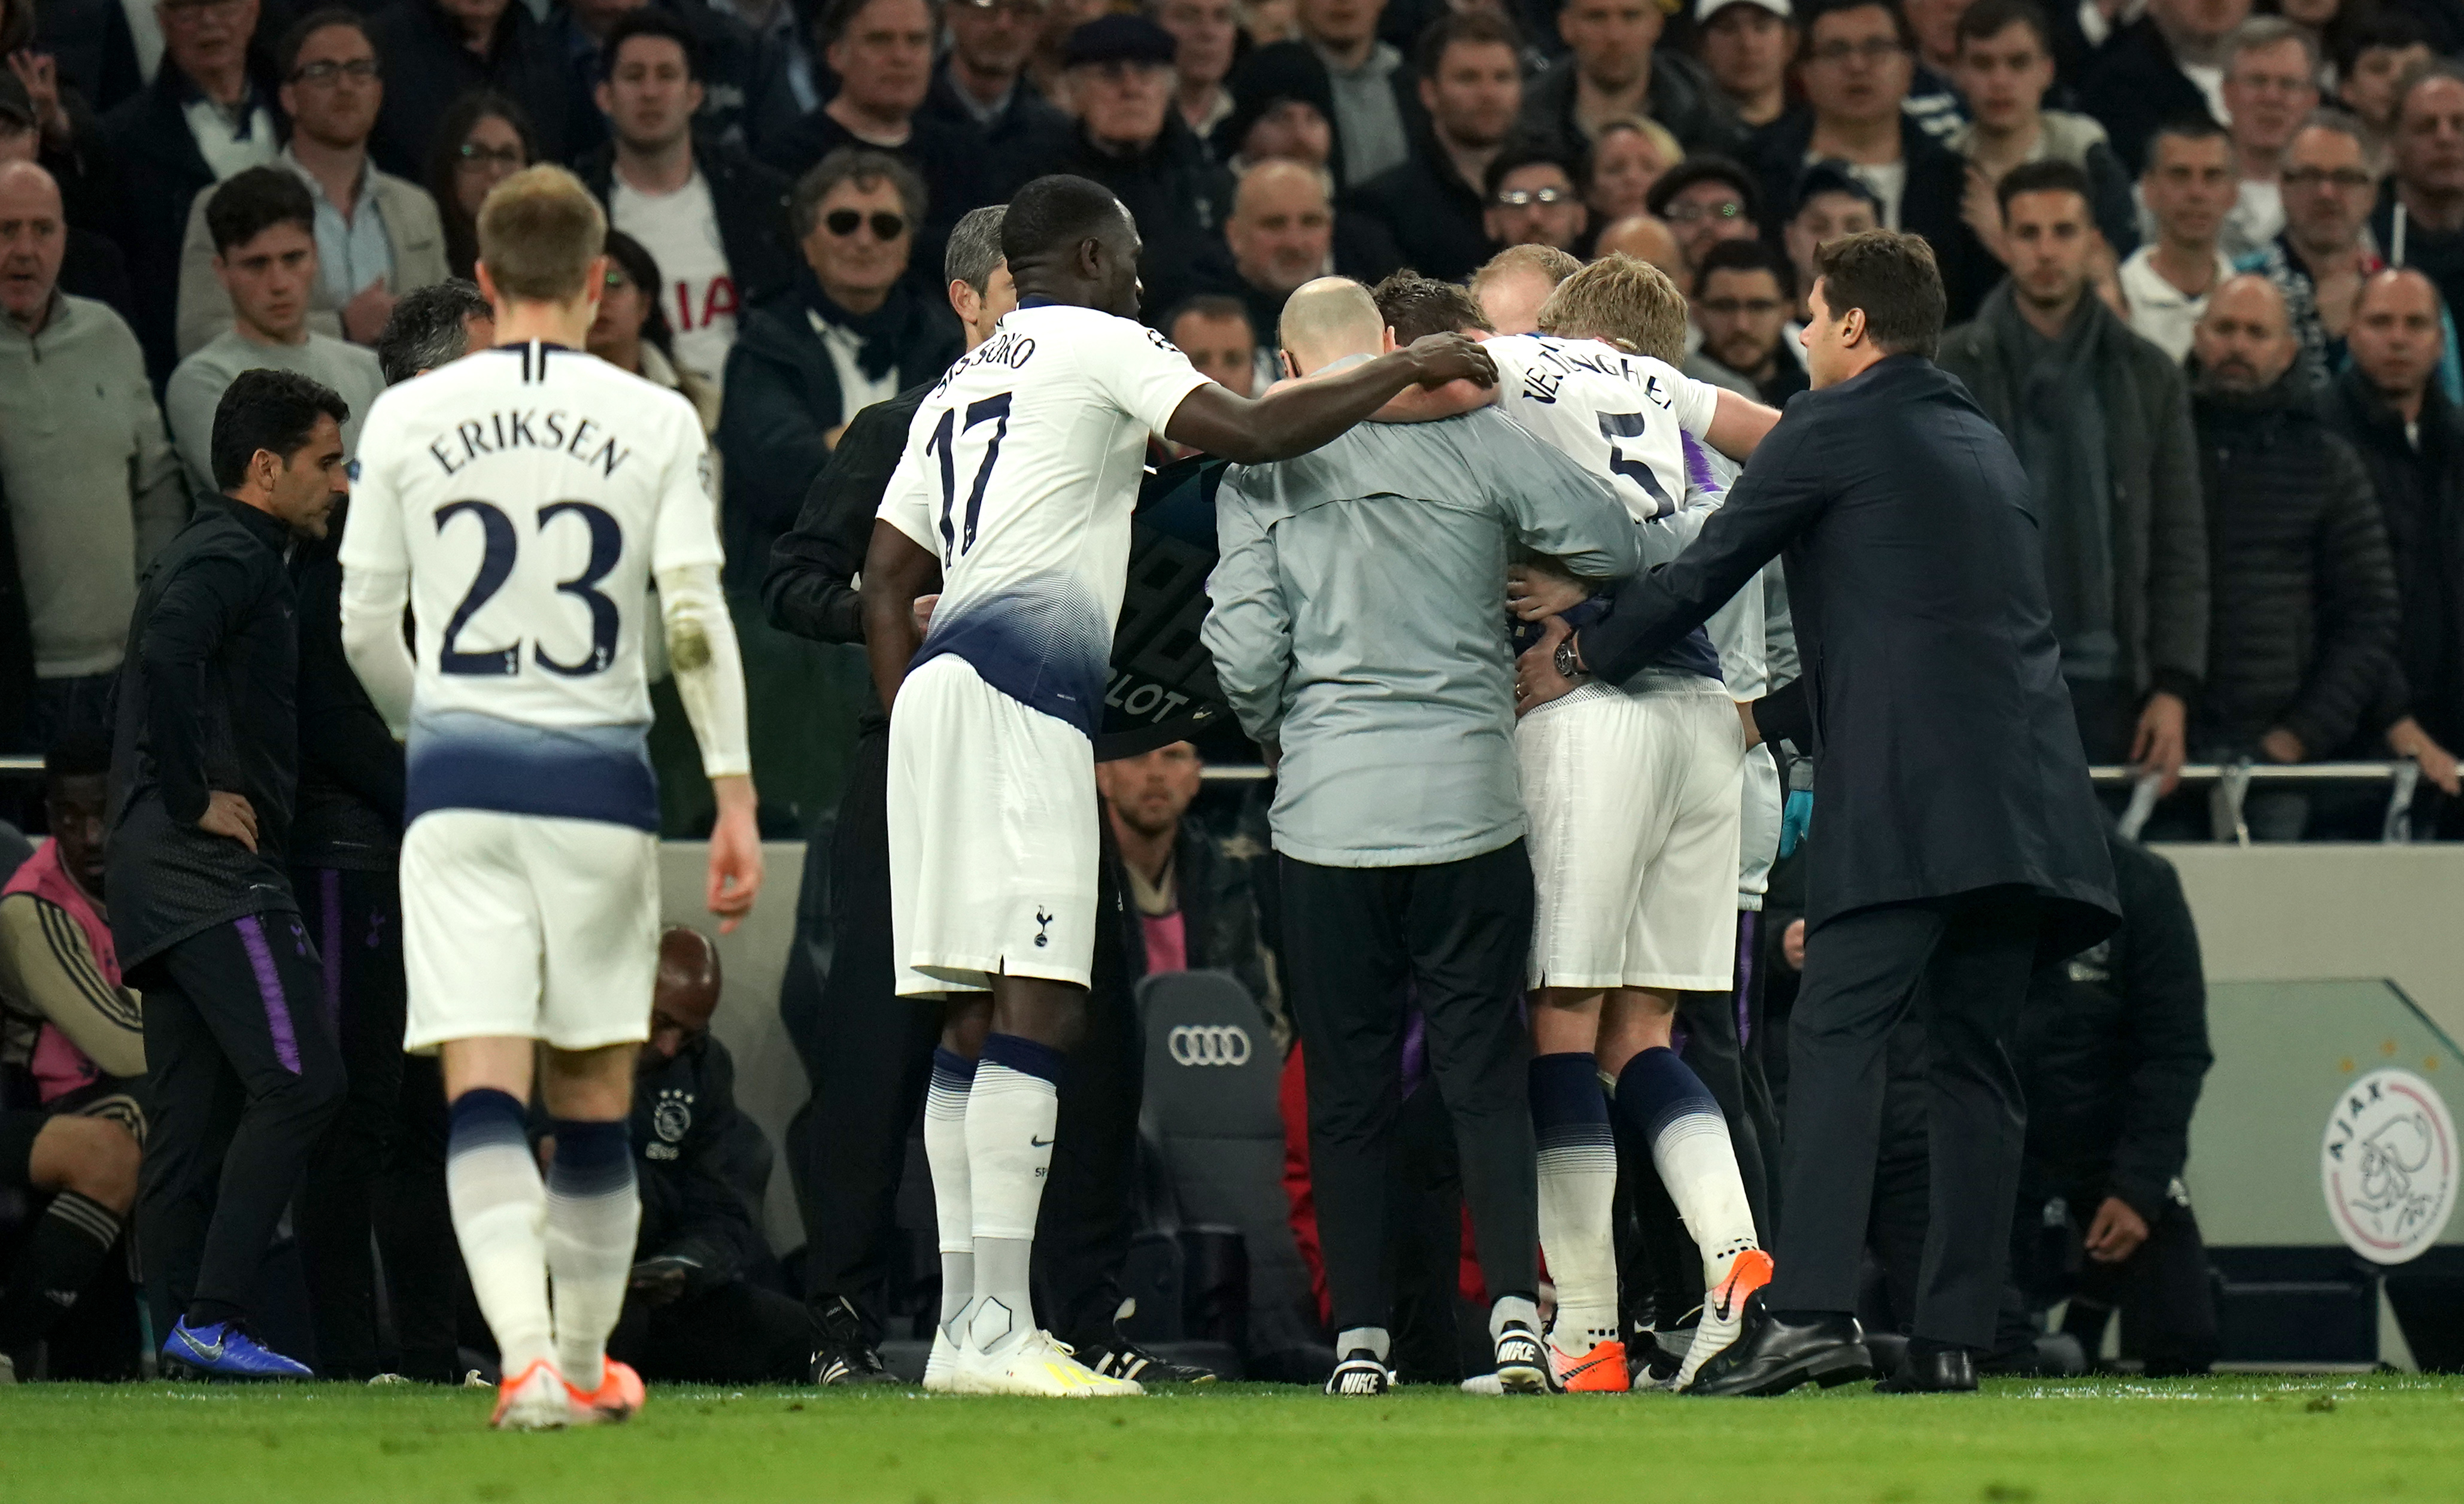 Vertonghen was helped off the pitch. Image: PA Images